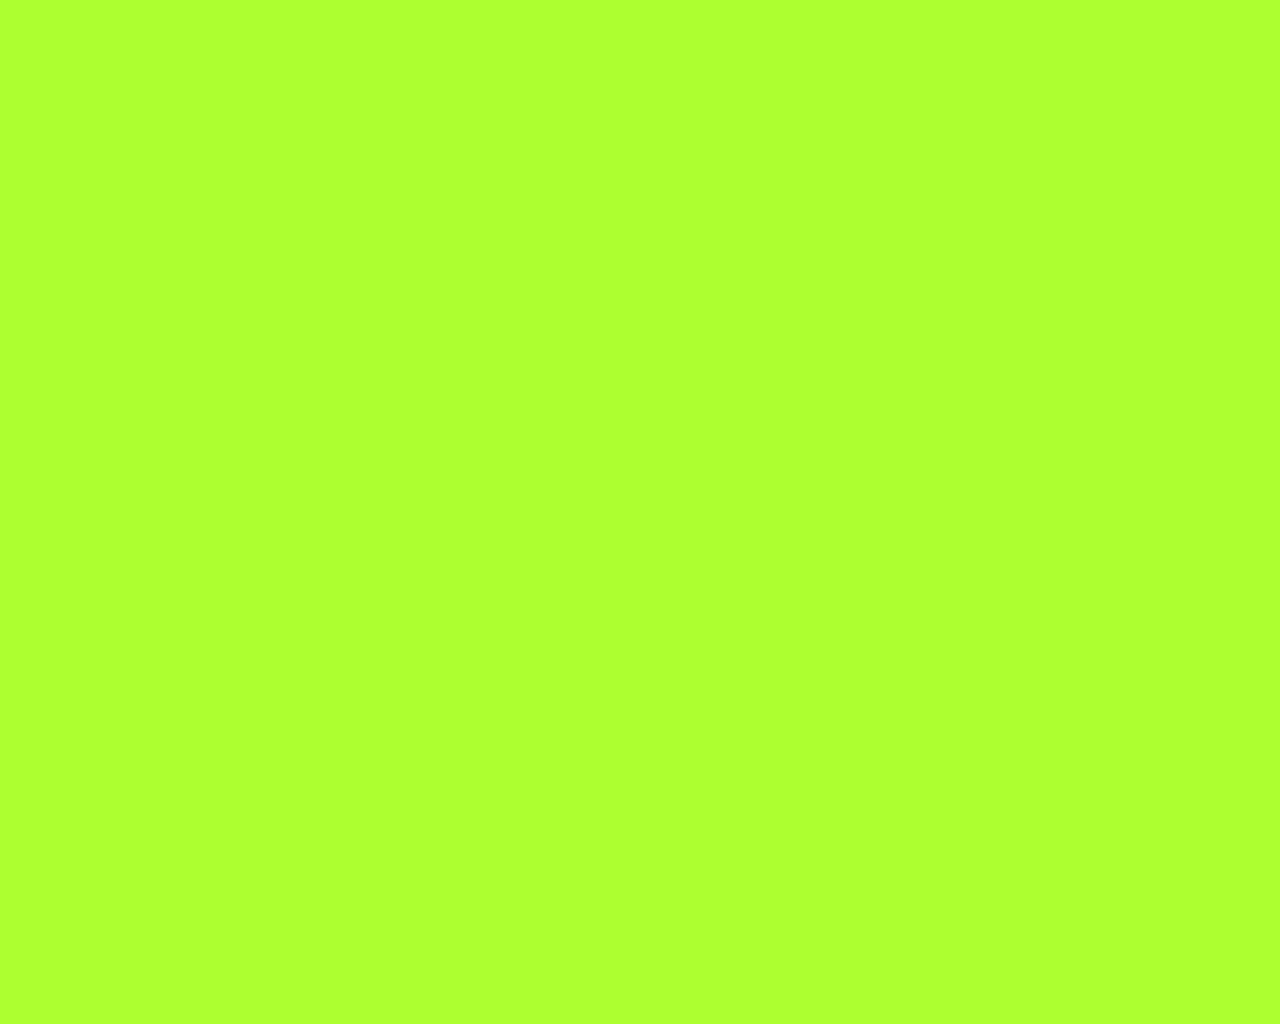 1280x1024 Green-yellow Solid Color Background